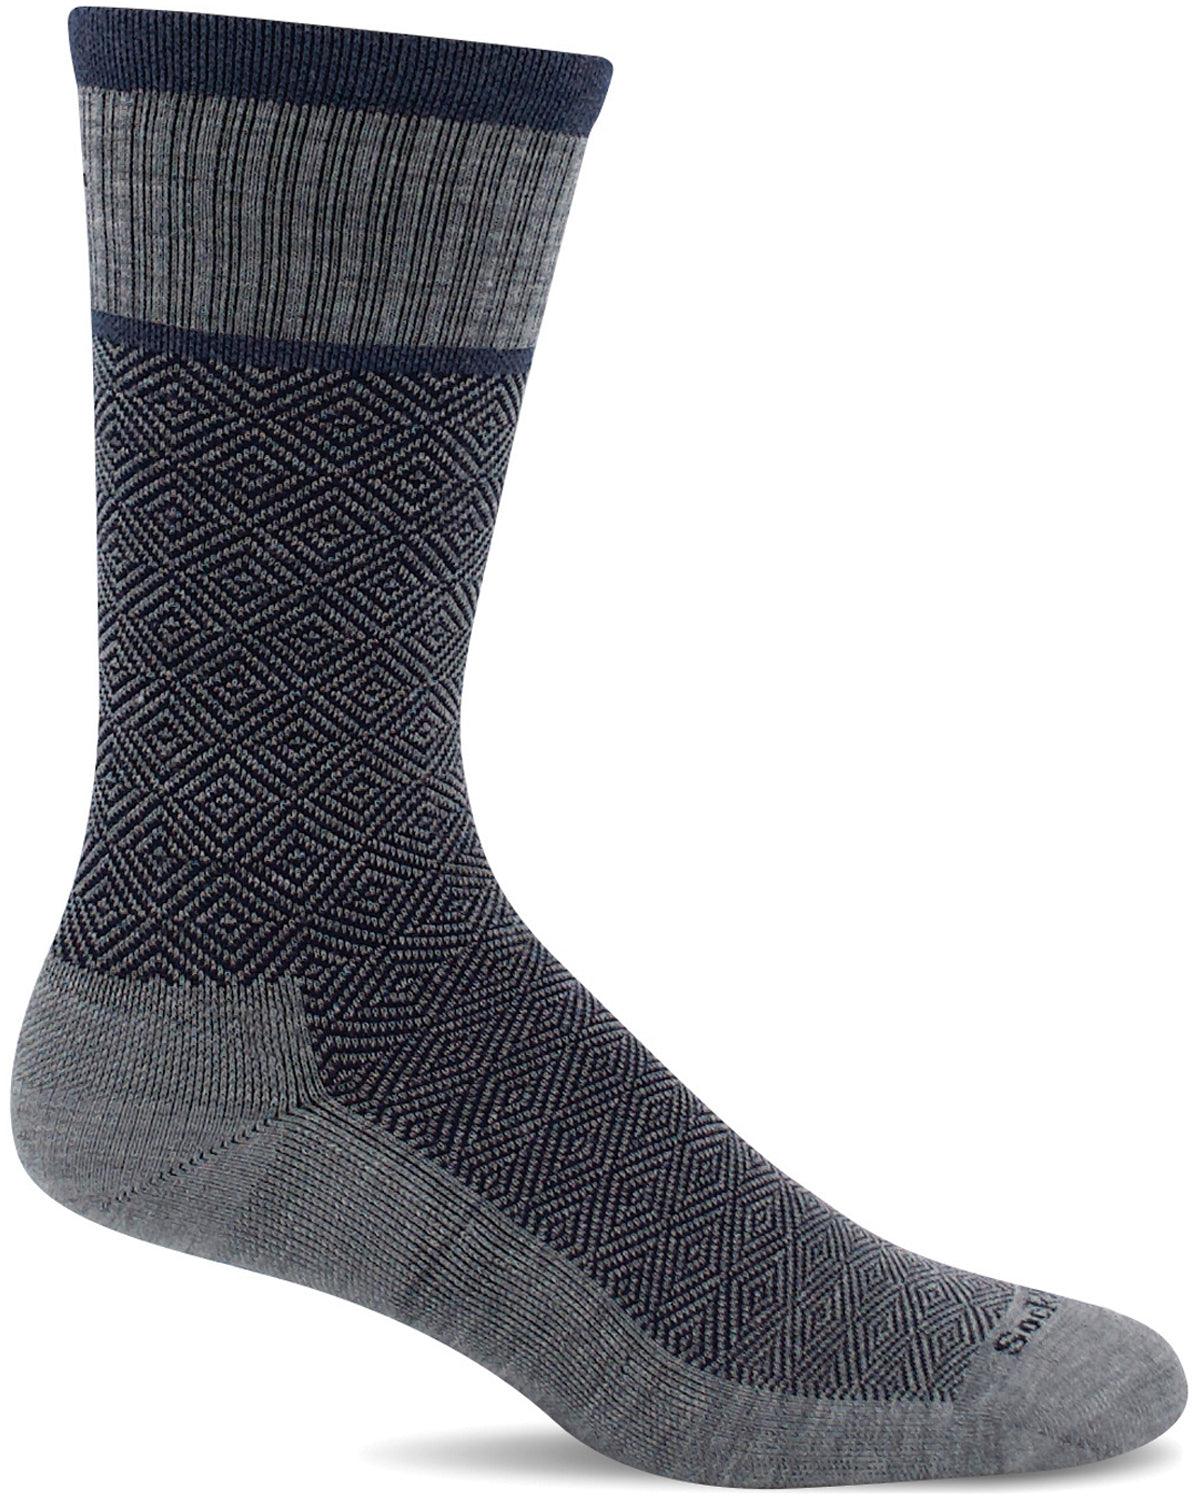 Sockwell Men's Plantar Cush Crew Sock in Grey color from the side